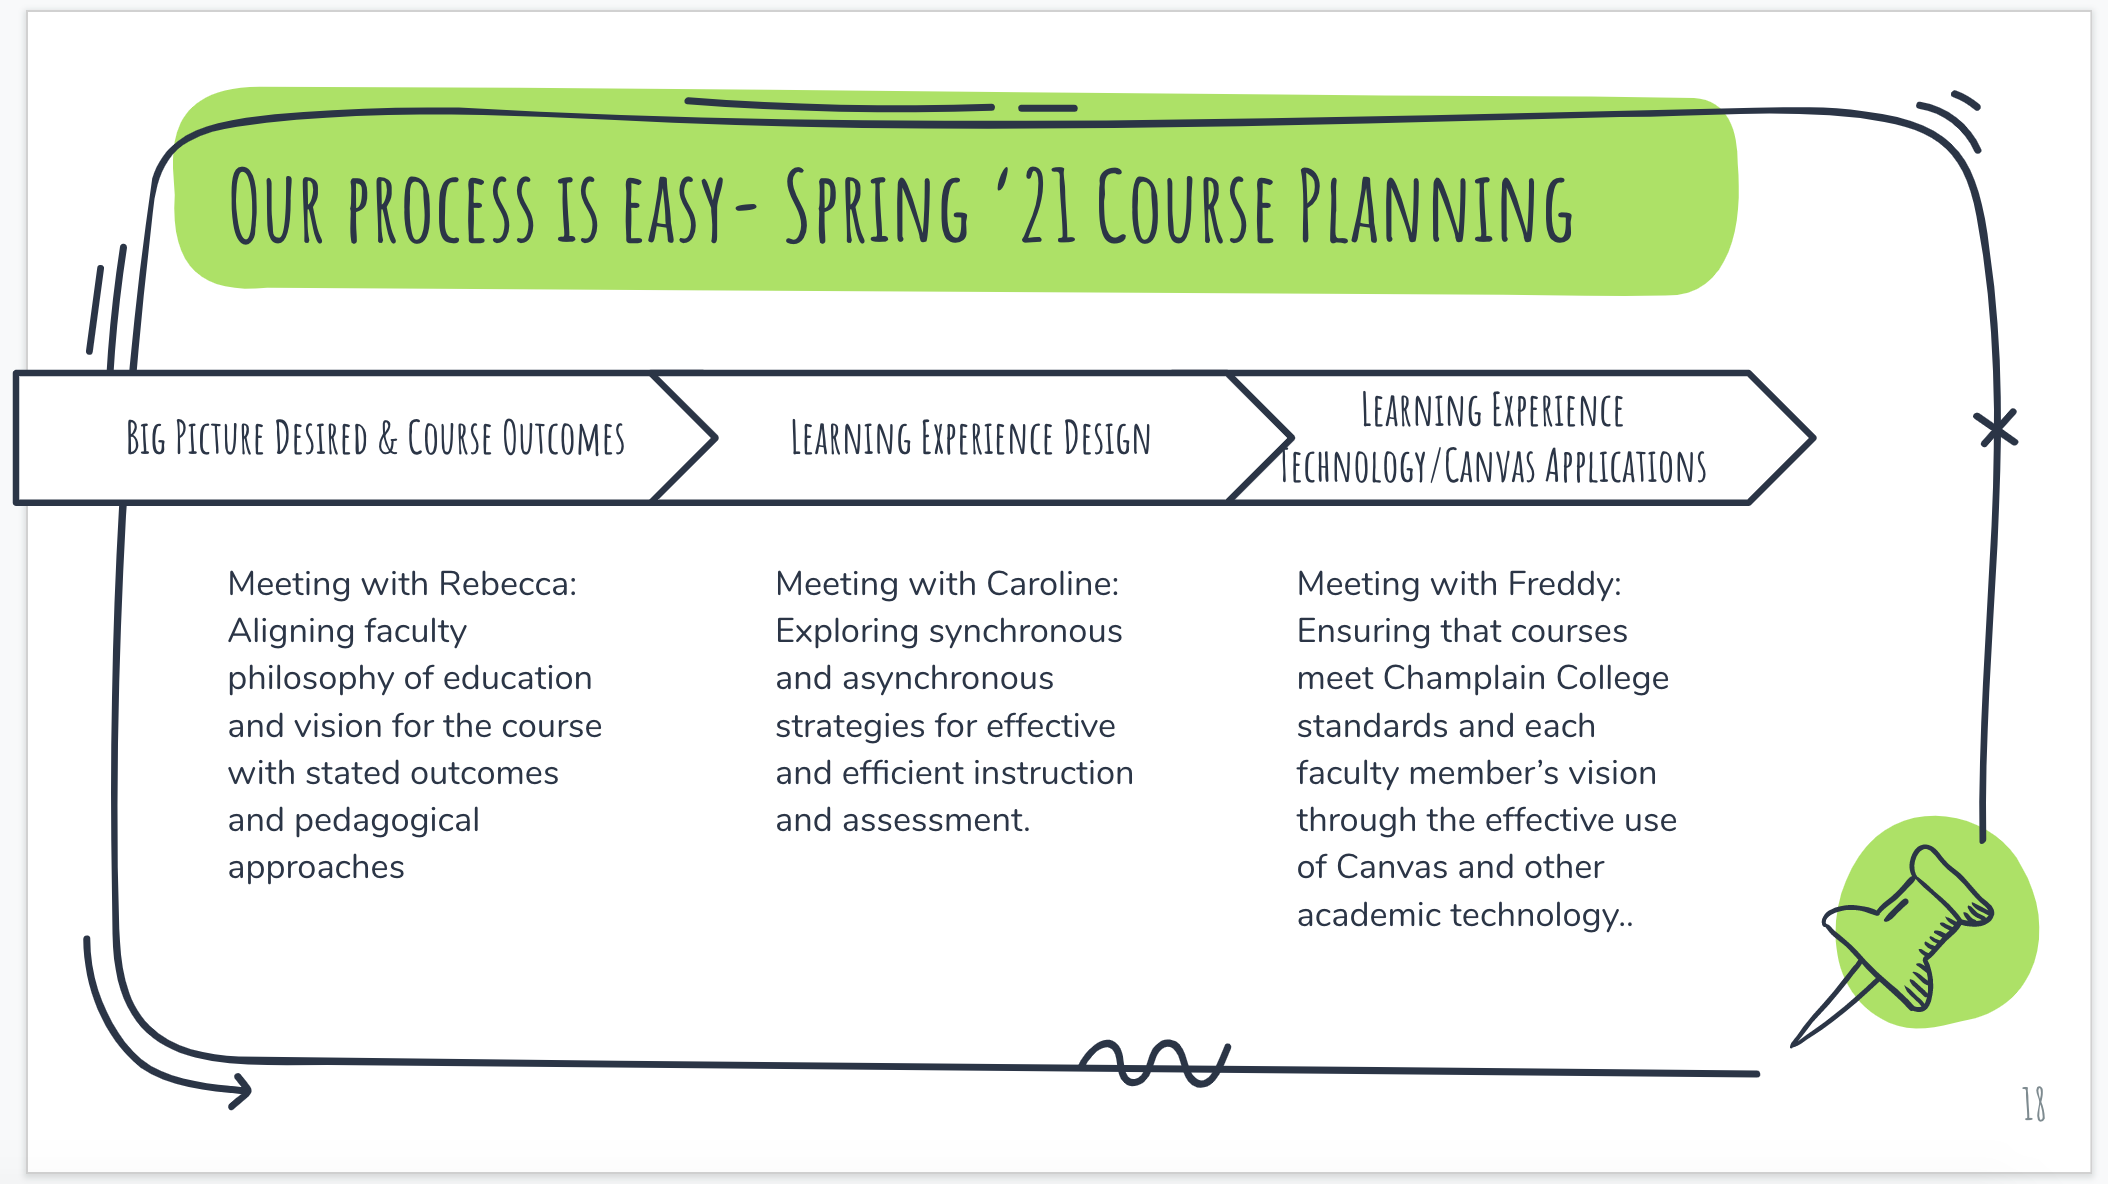 "Infographic titled Our Process is Easy - Spring '21 Course Planning. There are arrows progressing through three stages: Big Picture Desired and Course Outcomes, Learning Experience Design, and Learning Experience Technology slash Canvas Applications. Text in the Big Picture stage reads ""Meeting with Rebecca: Aligning faculty philosophy of education and vision for the course with stated outcomes and pedagogical approaches"". The second stage, Learning Experience Design, is described as ""Meeting with Caroline: Exploring synchronous and asynchronous strategies for effective and efficient instruction and assessment."" The third and final stage, Learning Experience Technology slash Canvas Applications, is described as ""Meeting with Freddy: Ensuring that courses meet Champlain College standards and each faculty member's vision through the effective use of Canvas and other academic technology."""